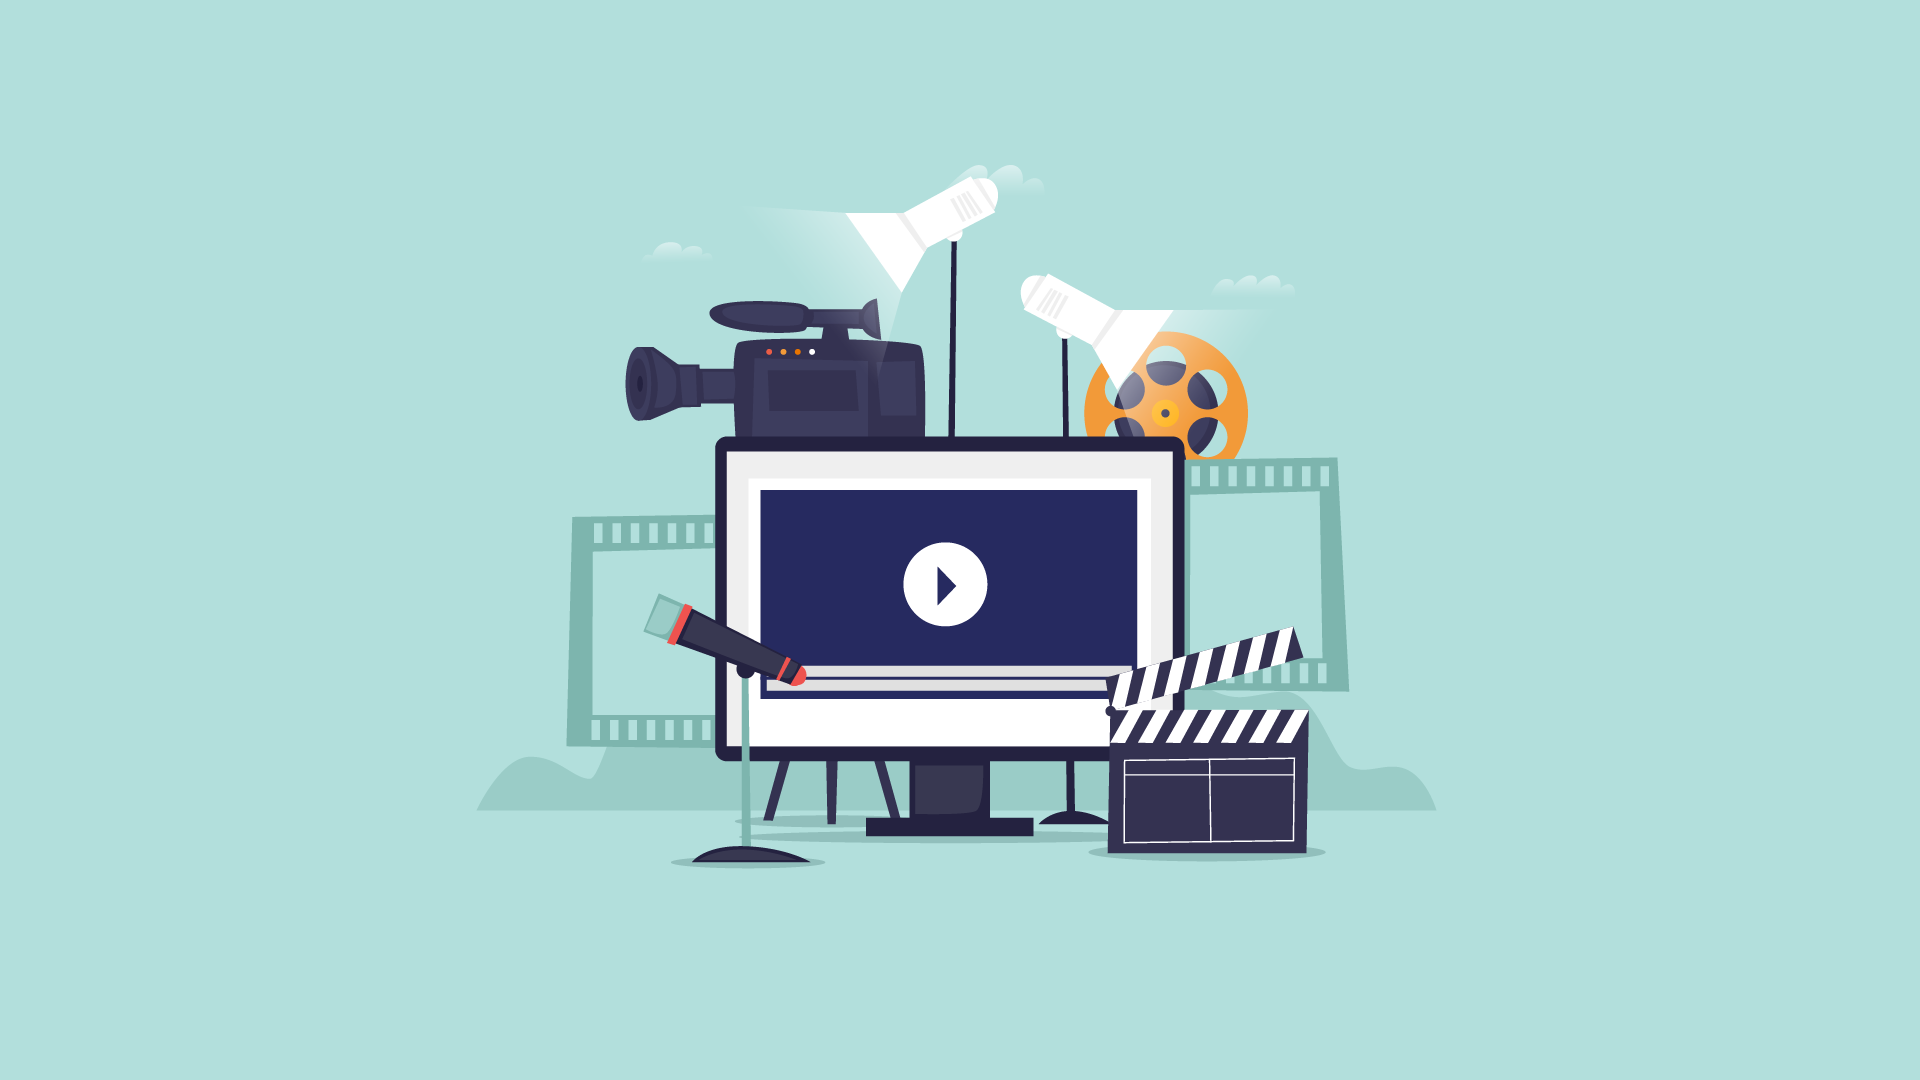 Subtitles Premiere Pro: How to add subtitles to your Premiere Pro videos